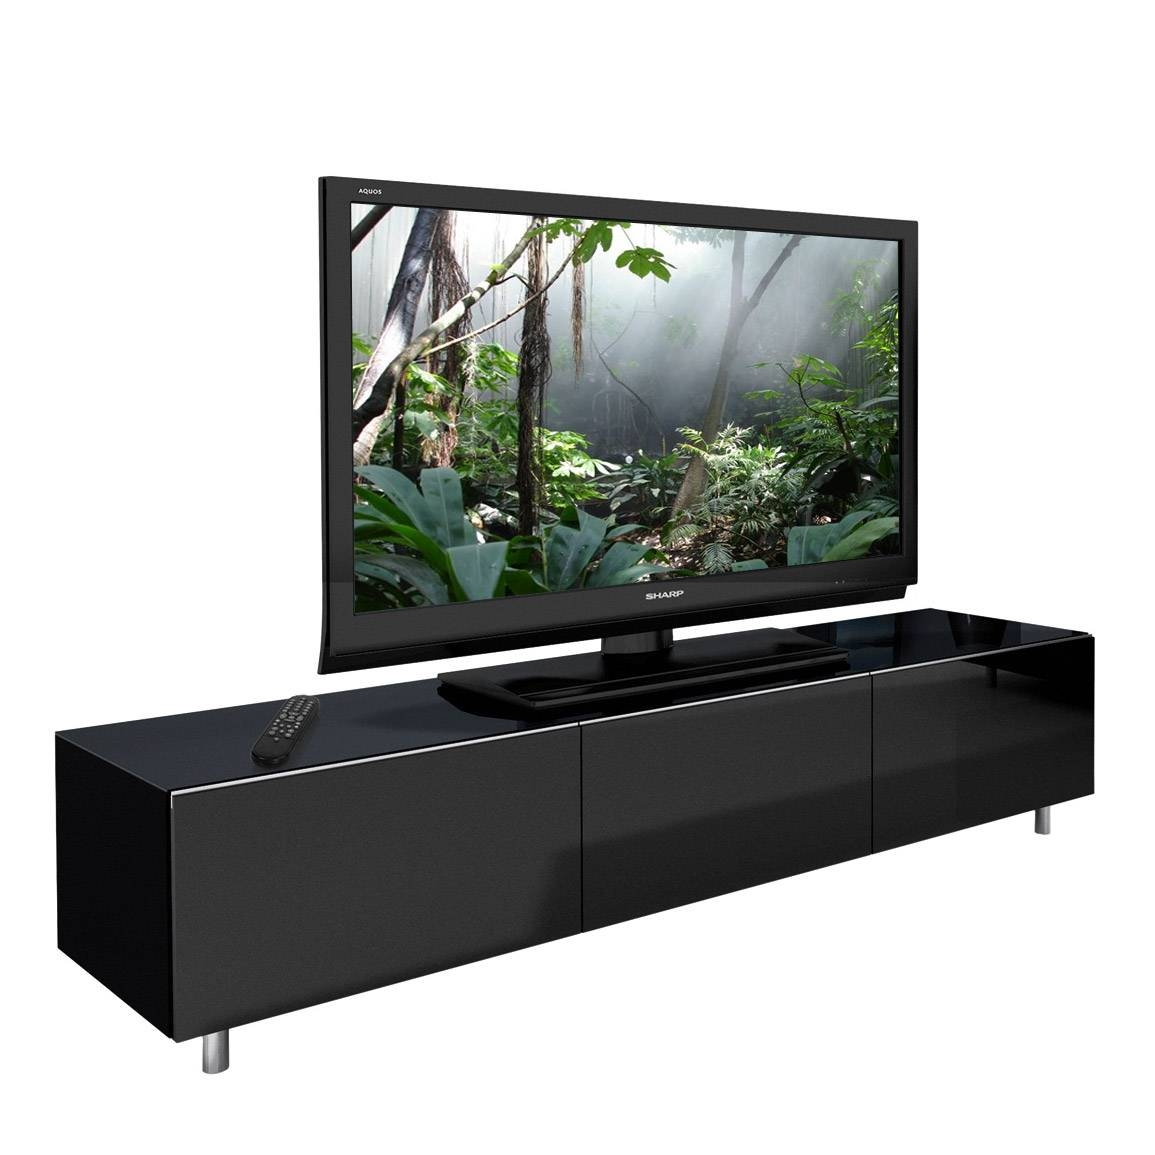 Just-Racks Jrl1650 Gloss Black Tv Cabinet - Black Tv Stands pertaining to Black Tv Cabinets With Doors (Image 10 of 15)